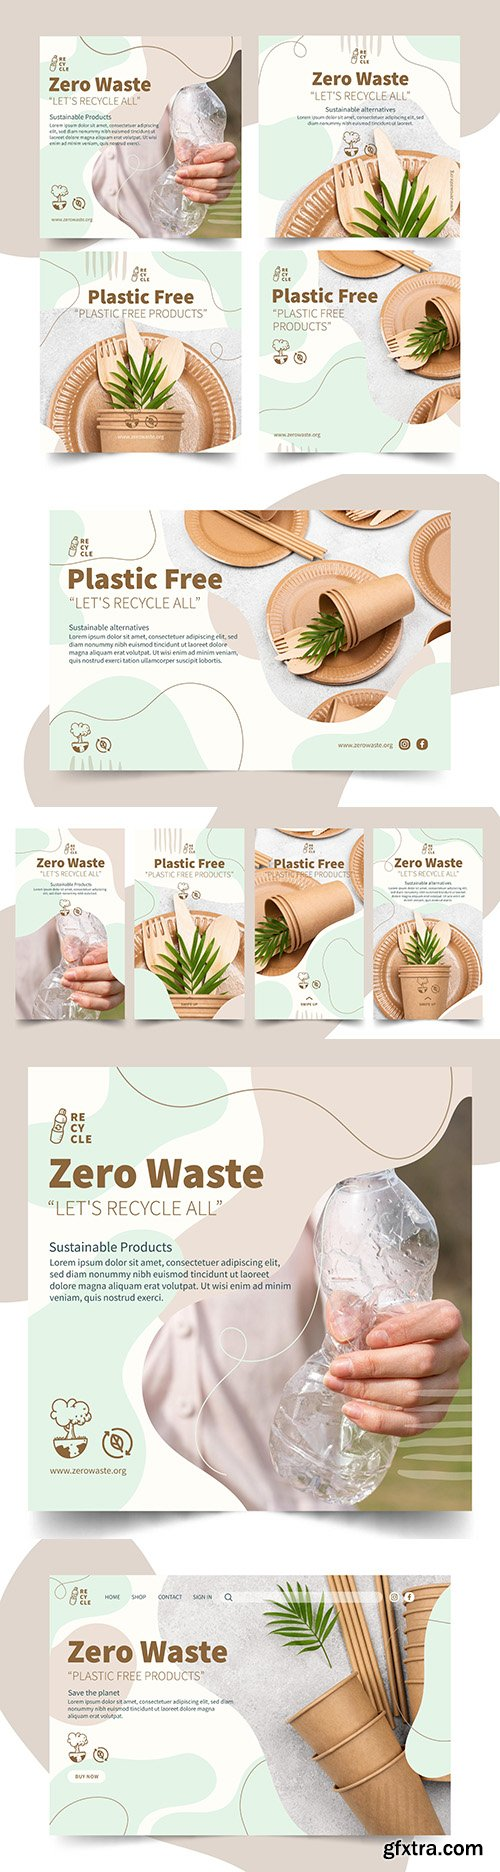 Zero waste and plastic free products design illustration